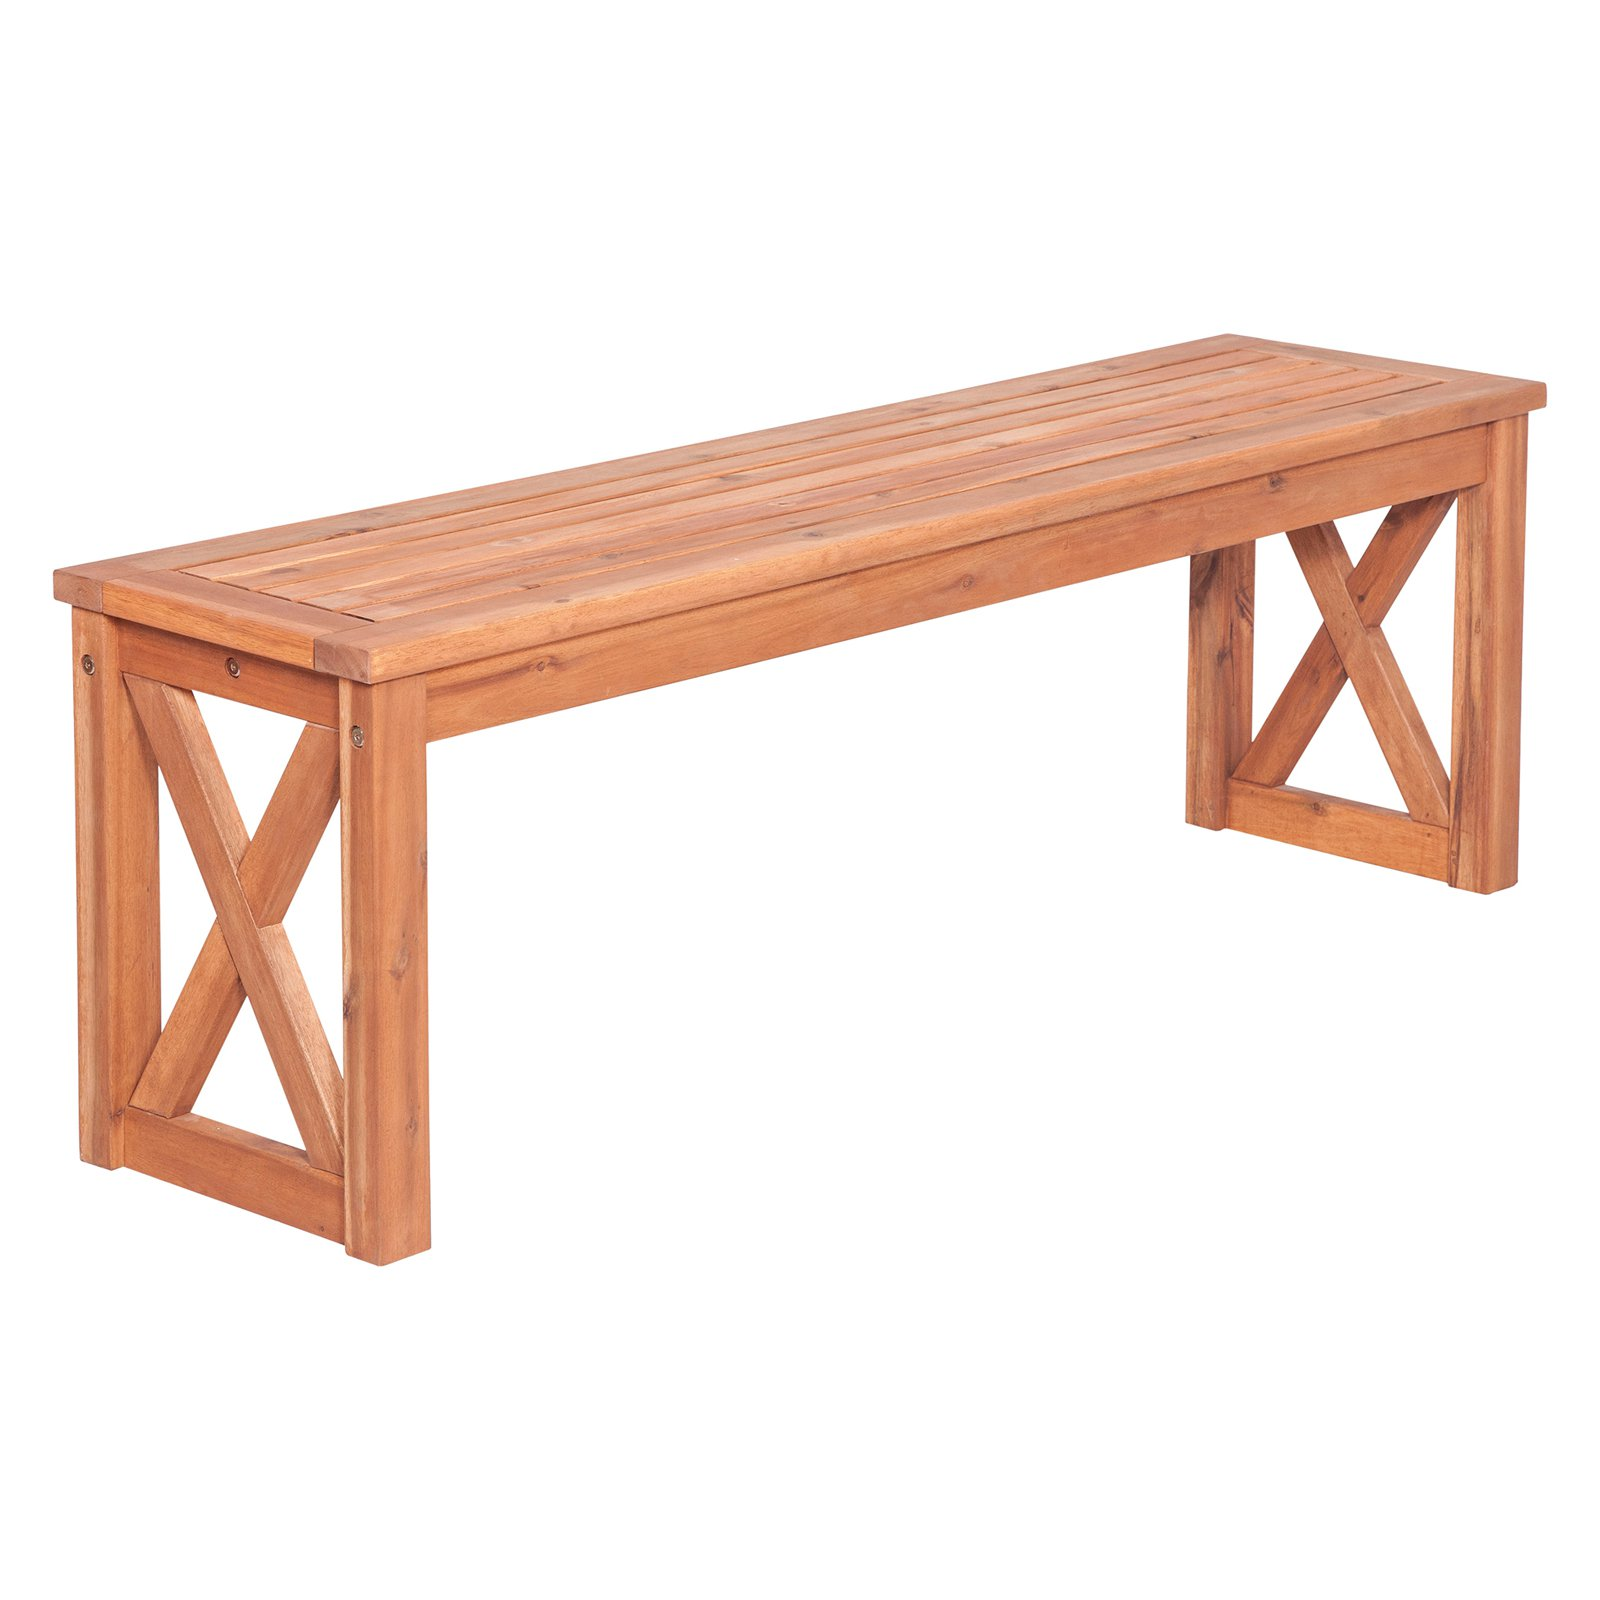 Walker Edison Acacia 53 in. Backless Patio Bench - Brown